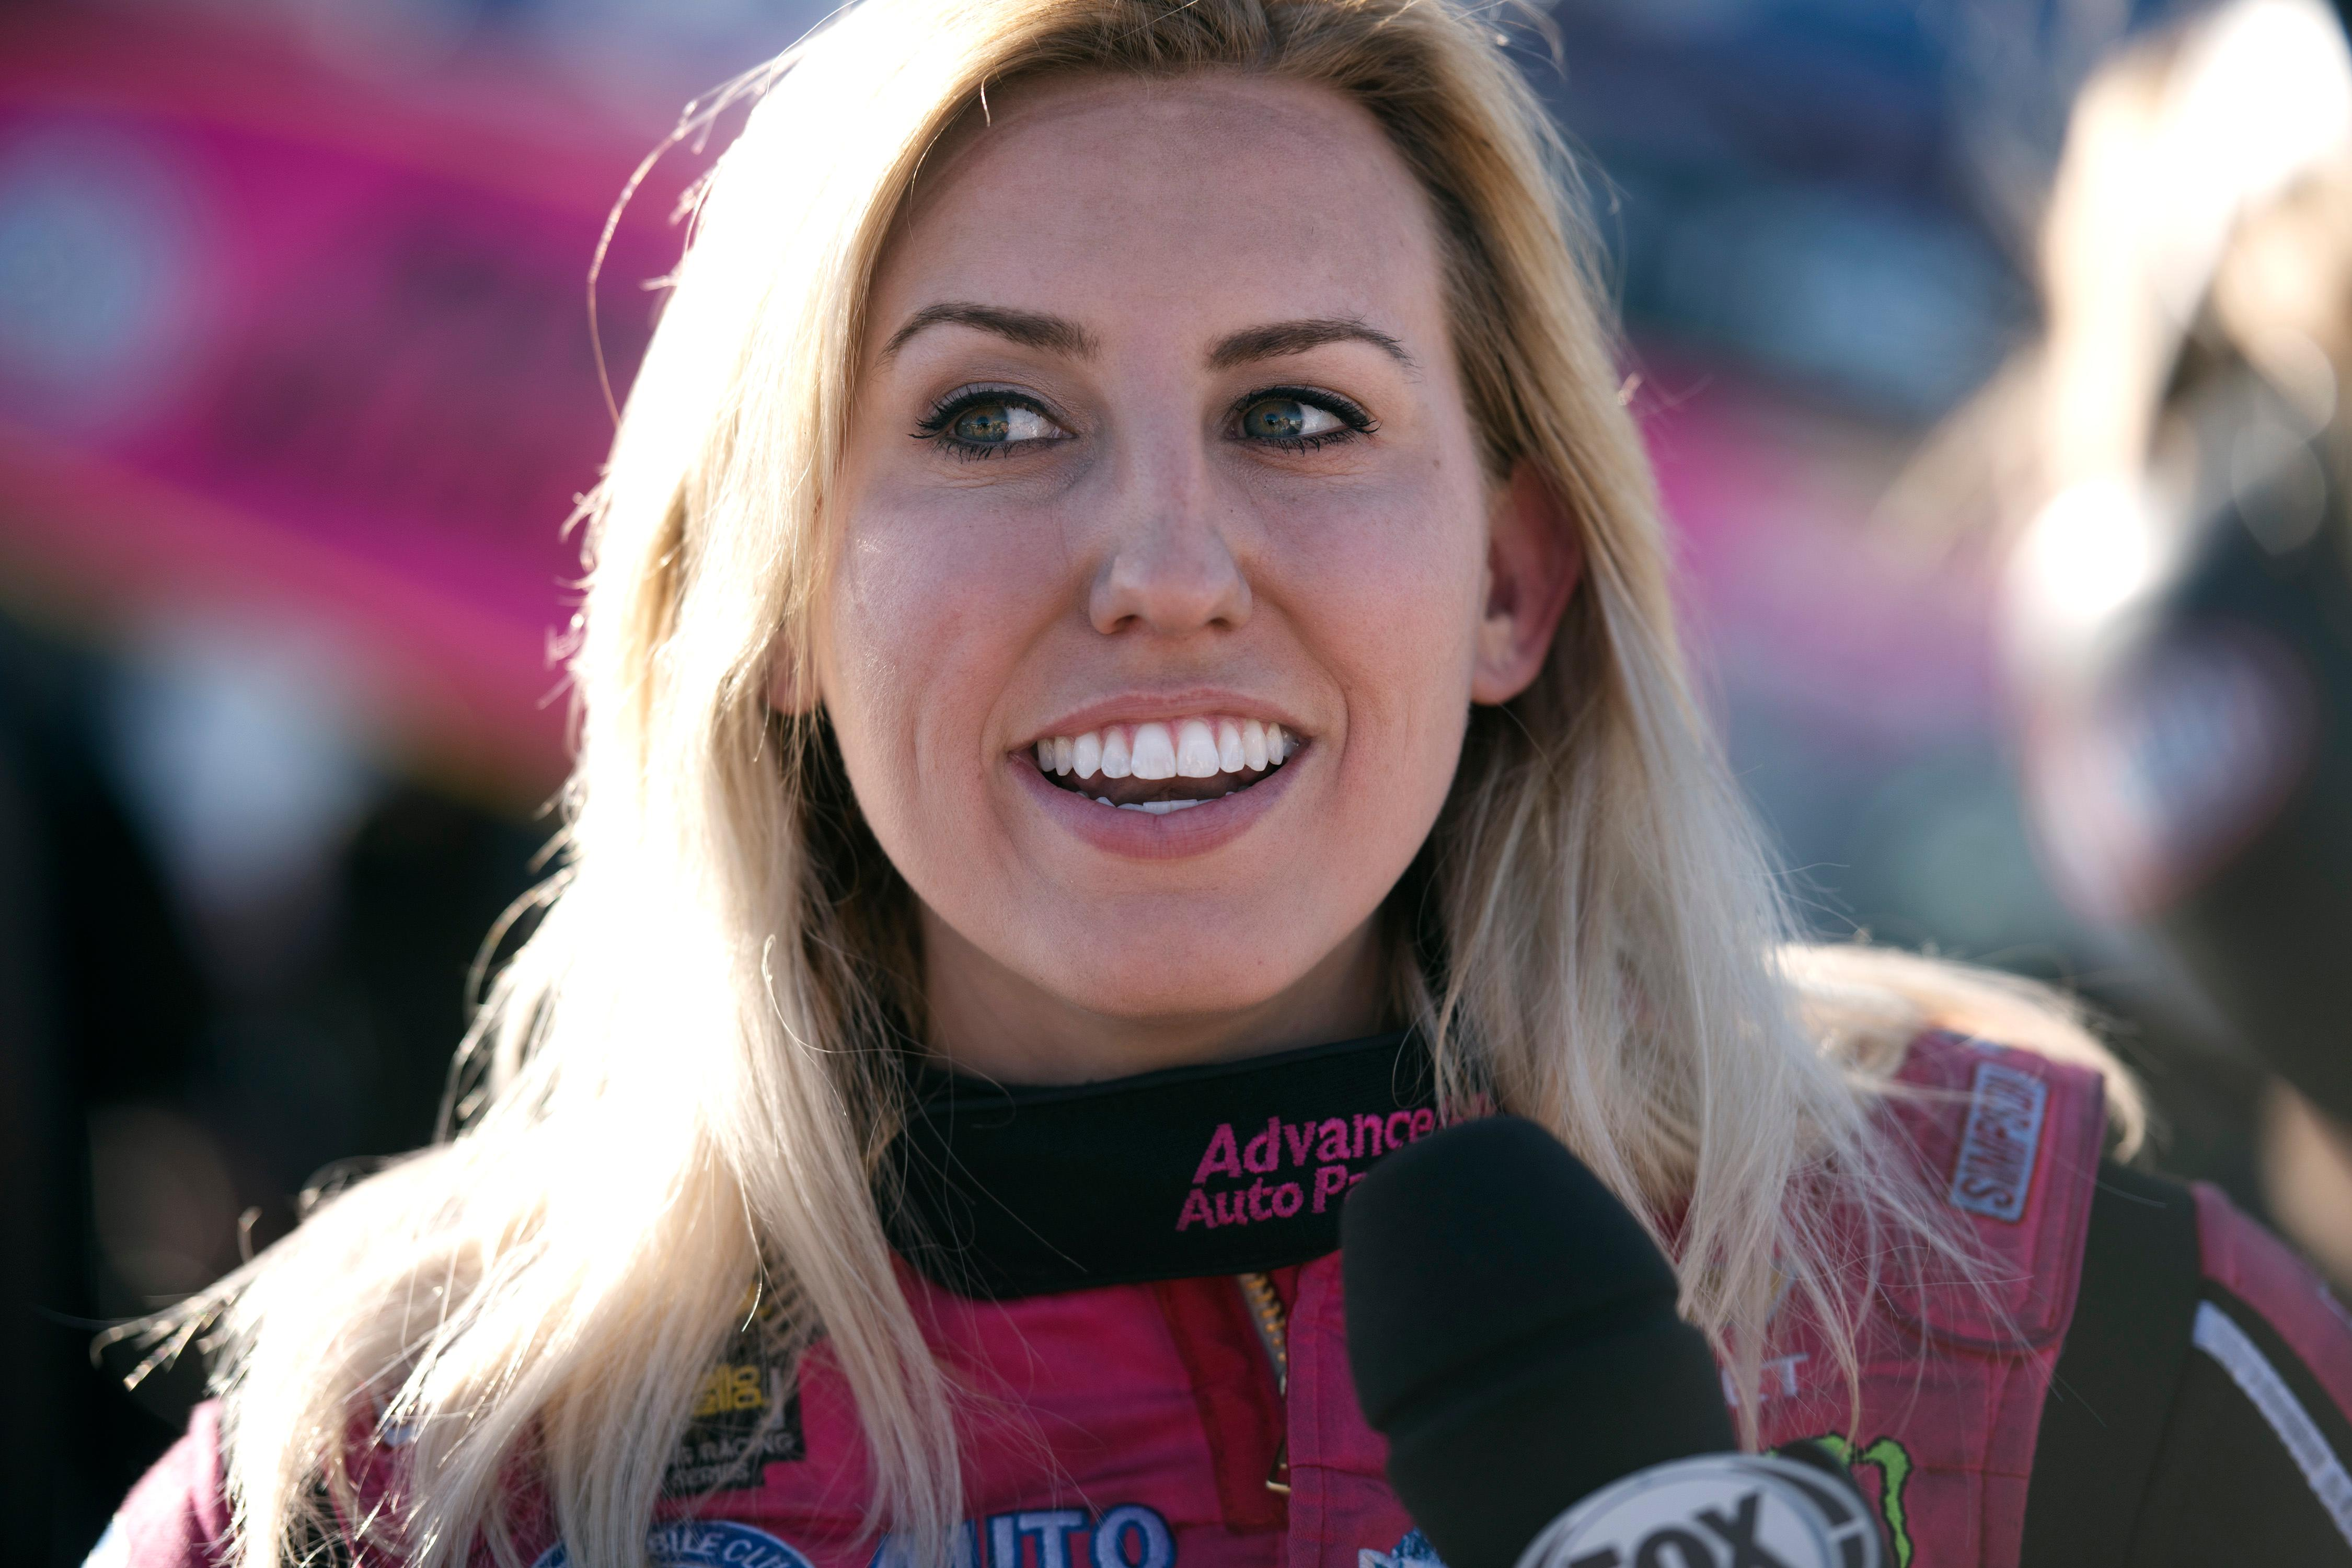 Funny Car driver Courtney Force is interviewed after a heat during the NHRA Toyota Nationals Sunday, October 29, 2017, at The Strip at the Las Vegas Motor Speedway. CREDIT: Sam Morris/Las Vegas News Bureau